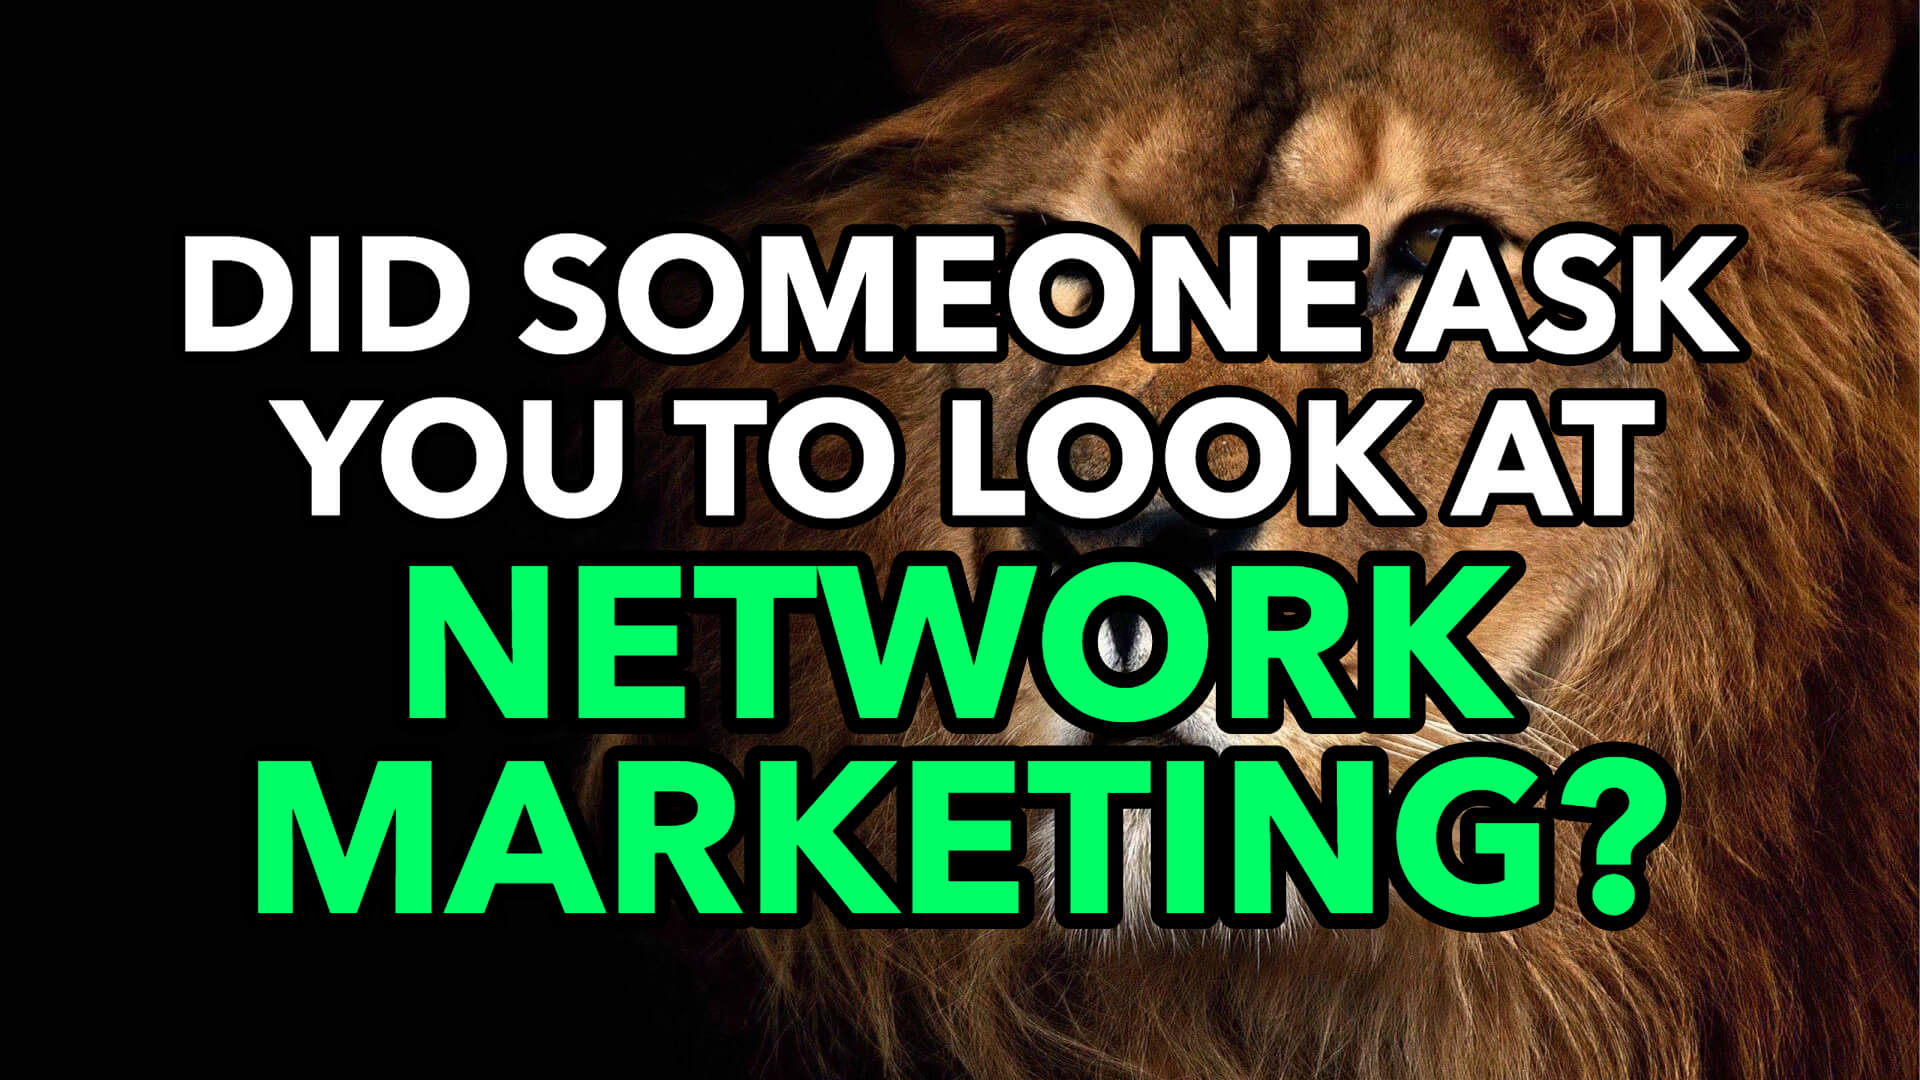 Is Network Marketing Bad? Is What You've Heard True?